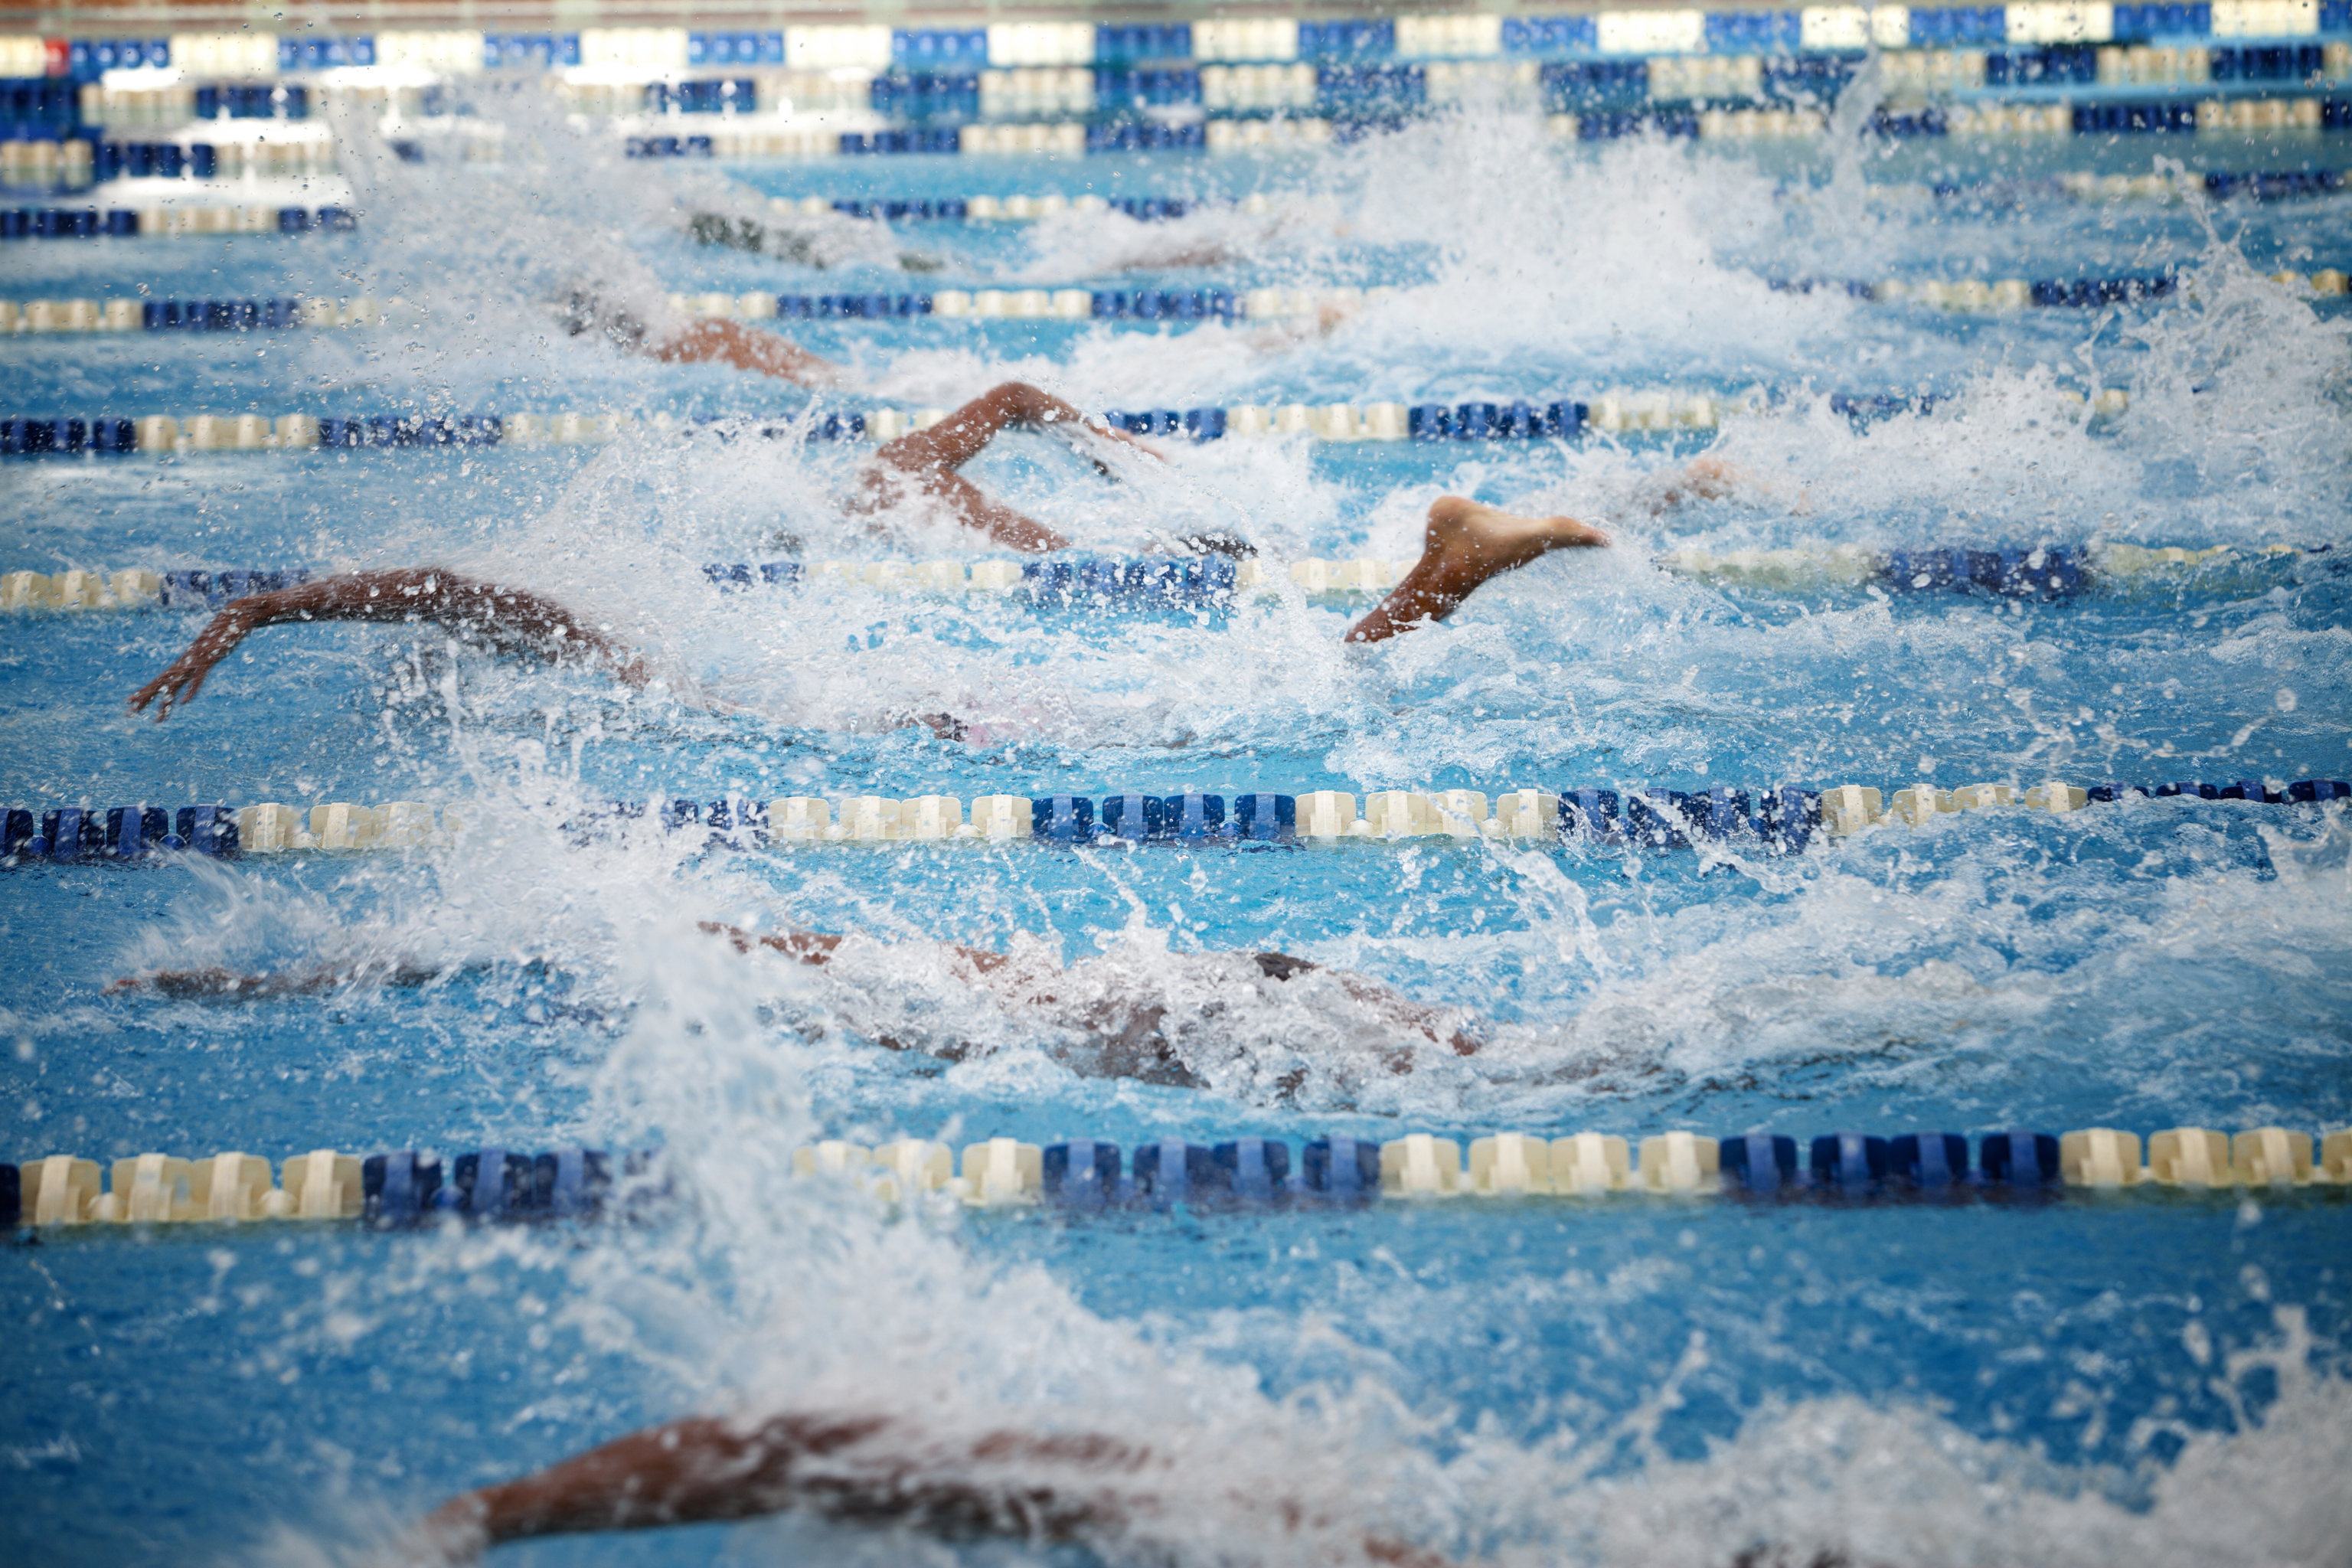 Swimmers compete in an Olympic-sized pool